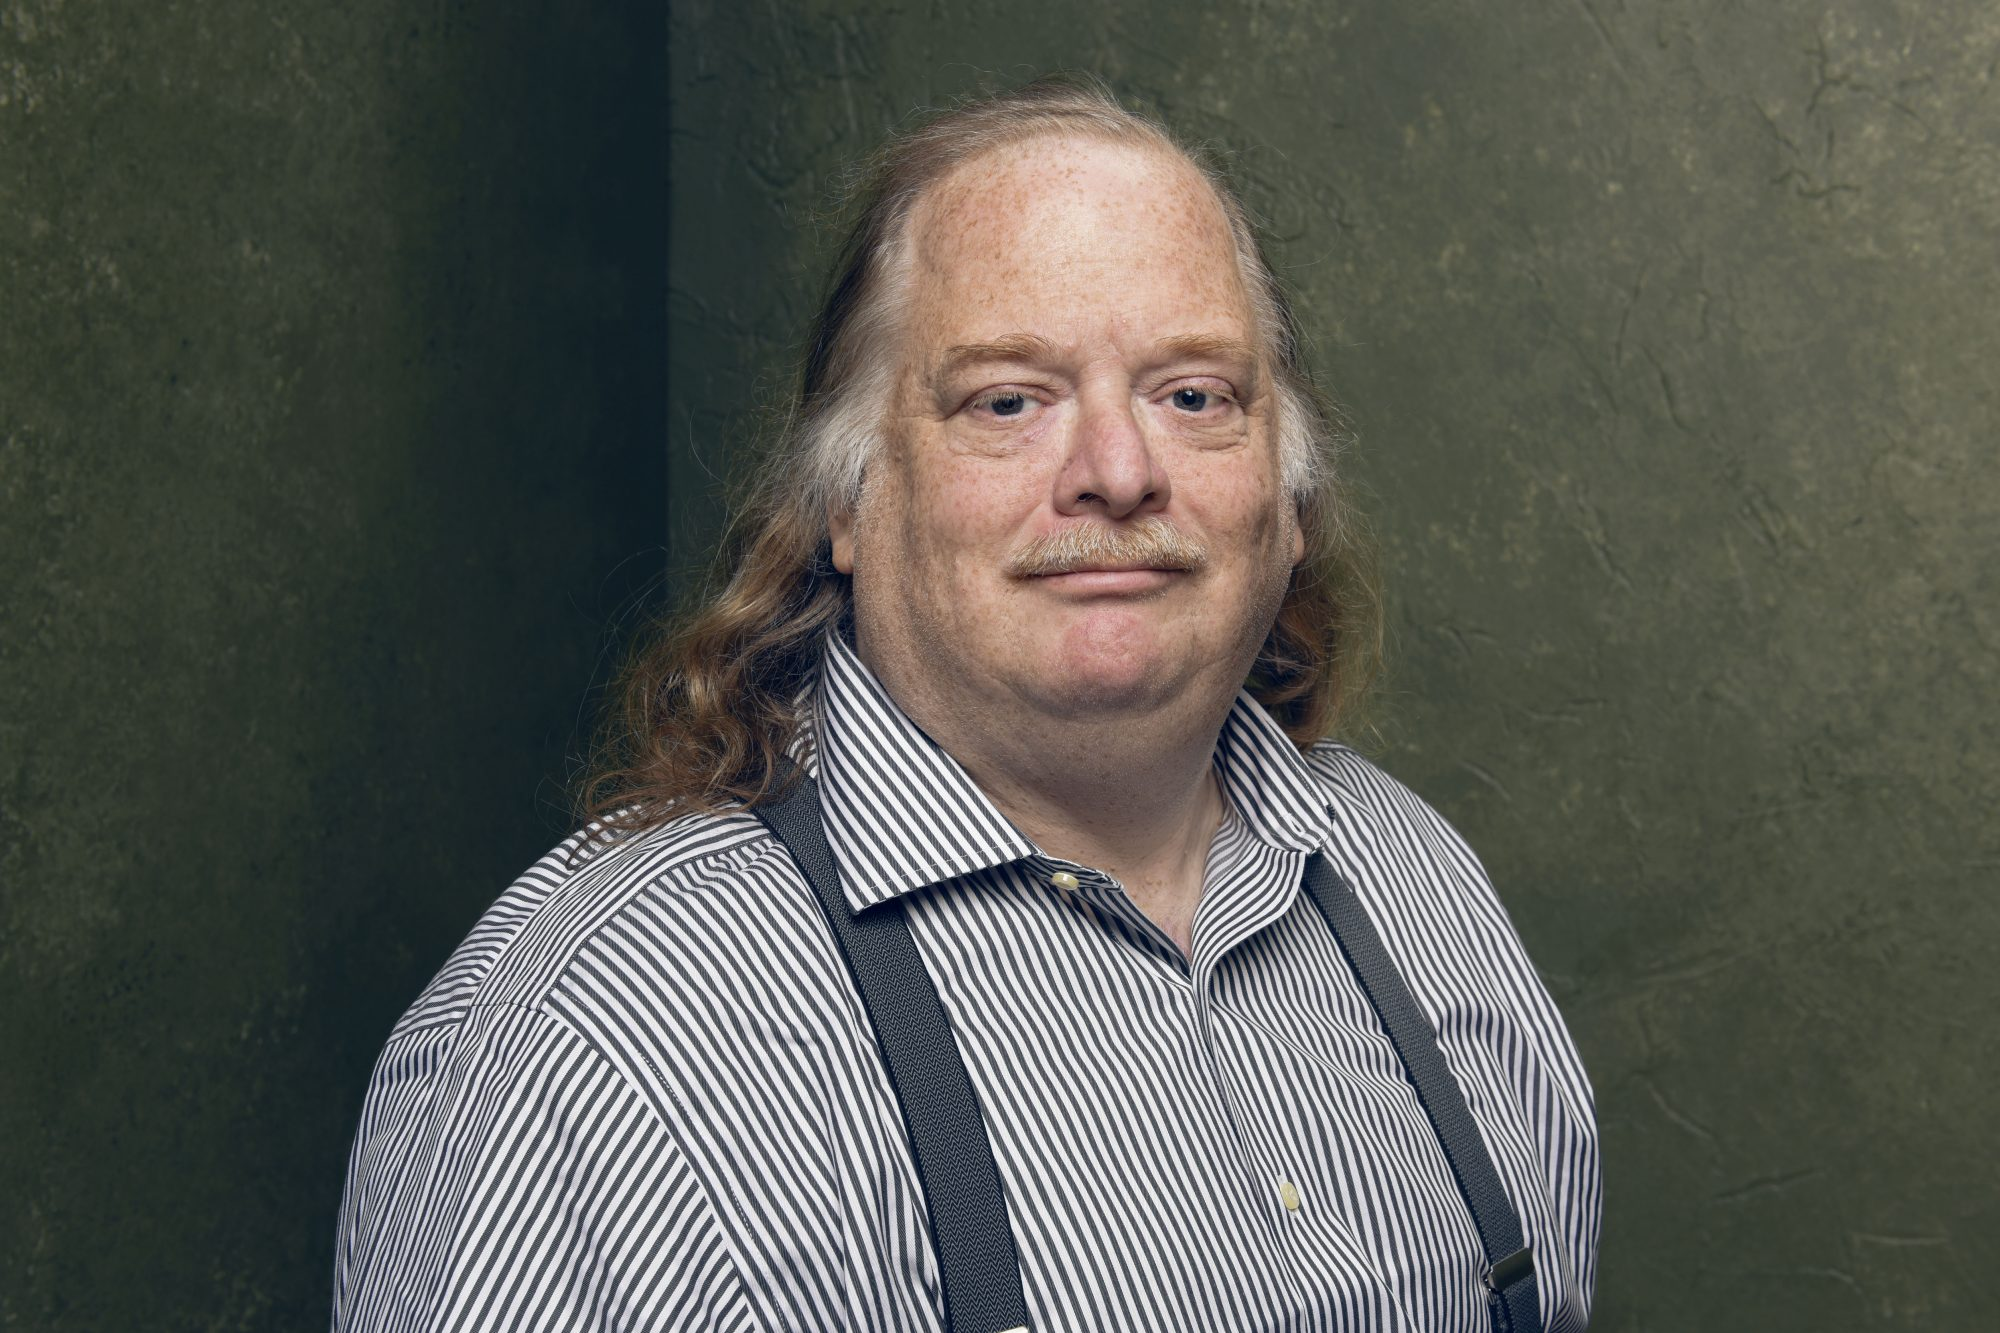 Jonathan-Gold-Tribute.jpg